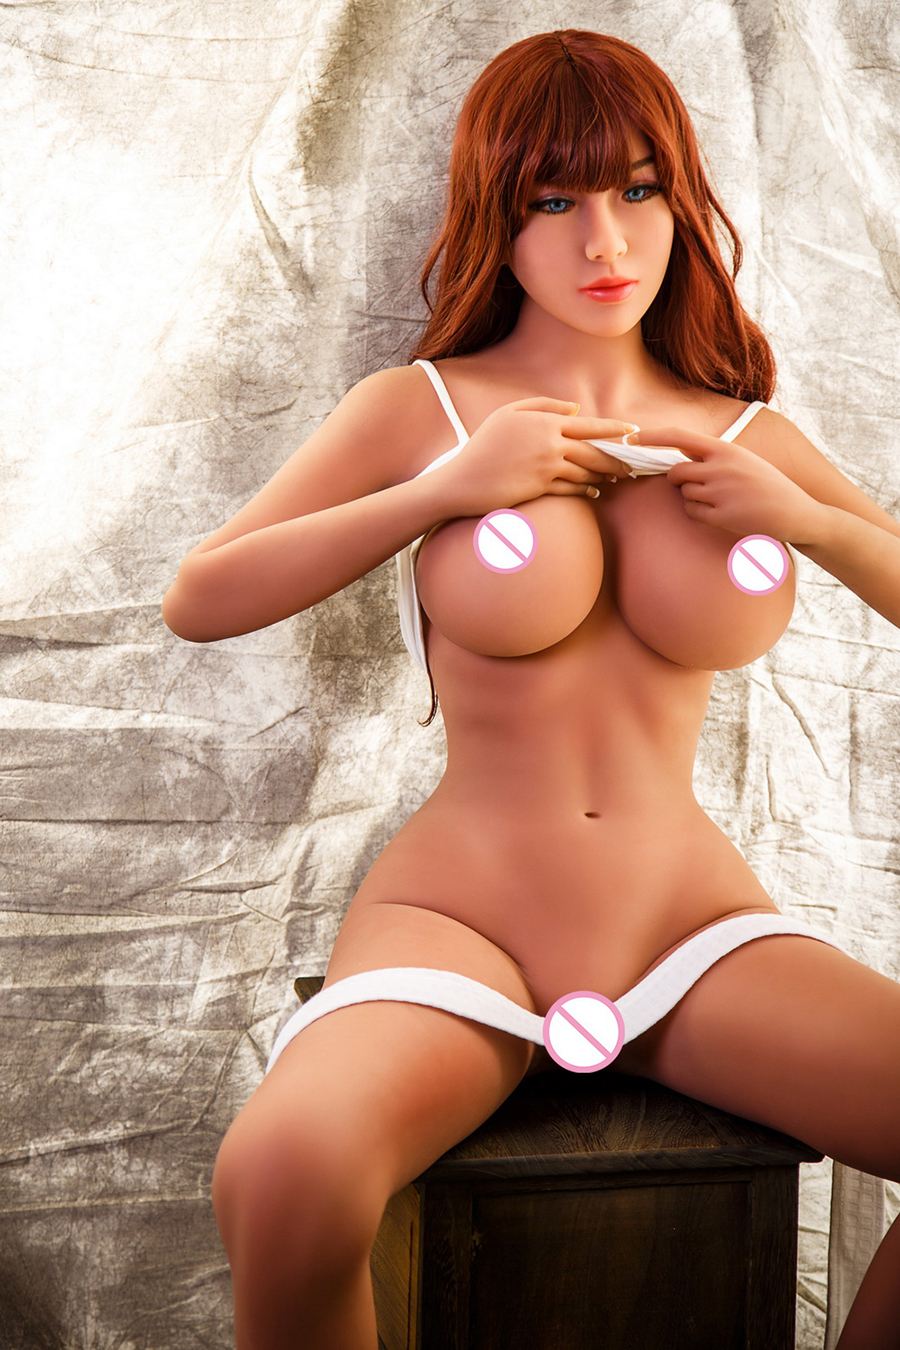 H422d56ccce1c46bcba380bf0256703371 xxxTPE Realistic 158cm Top Quality Realistic Breasts Real Silicone Sex Doll Lifelike Vagina Anus Oral Sex Doll For Men Sexy Doll